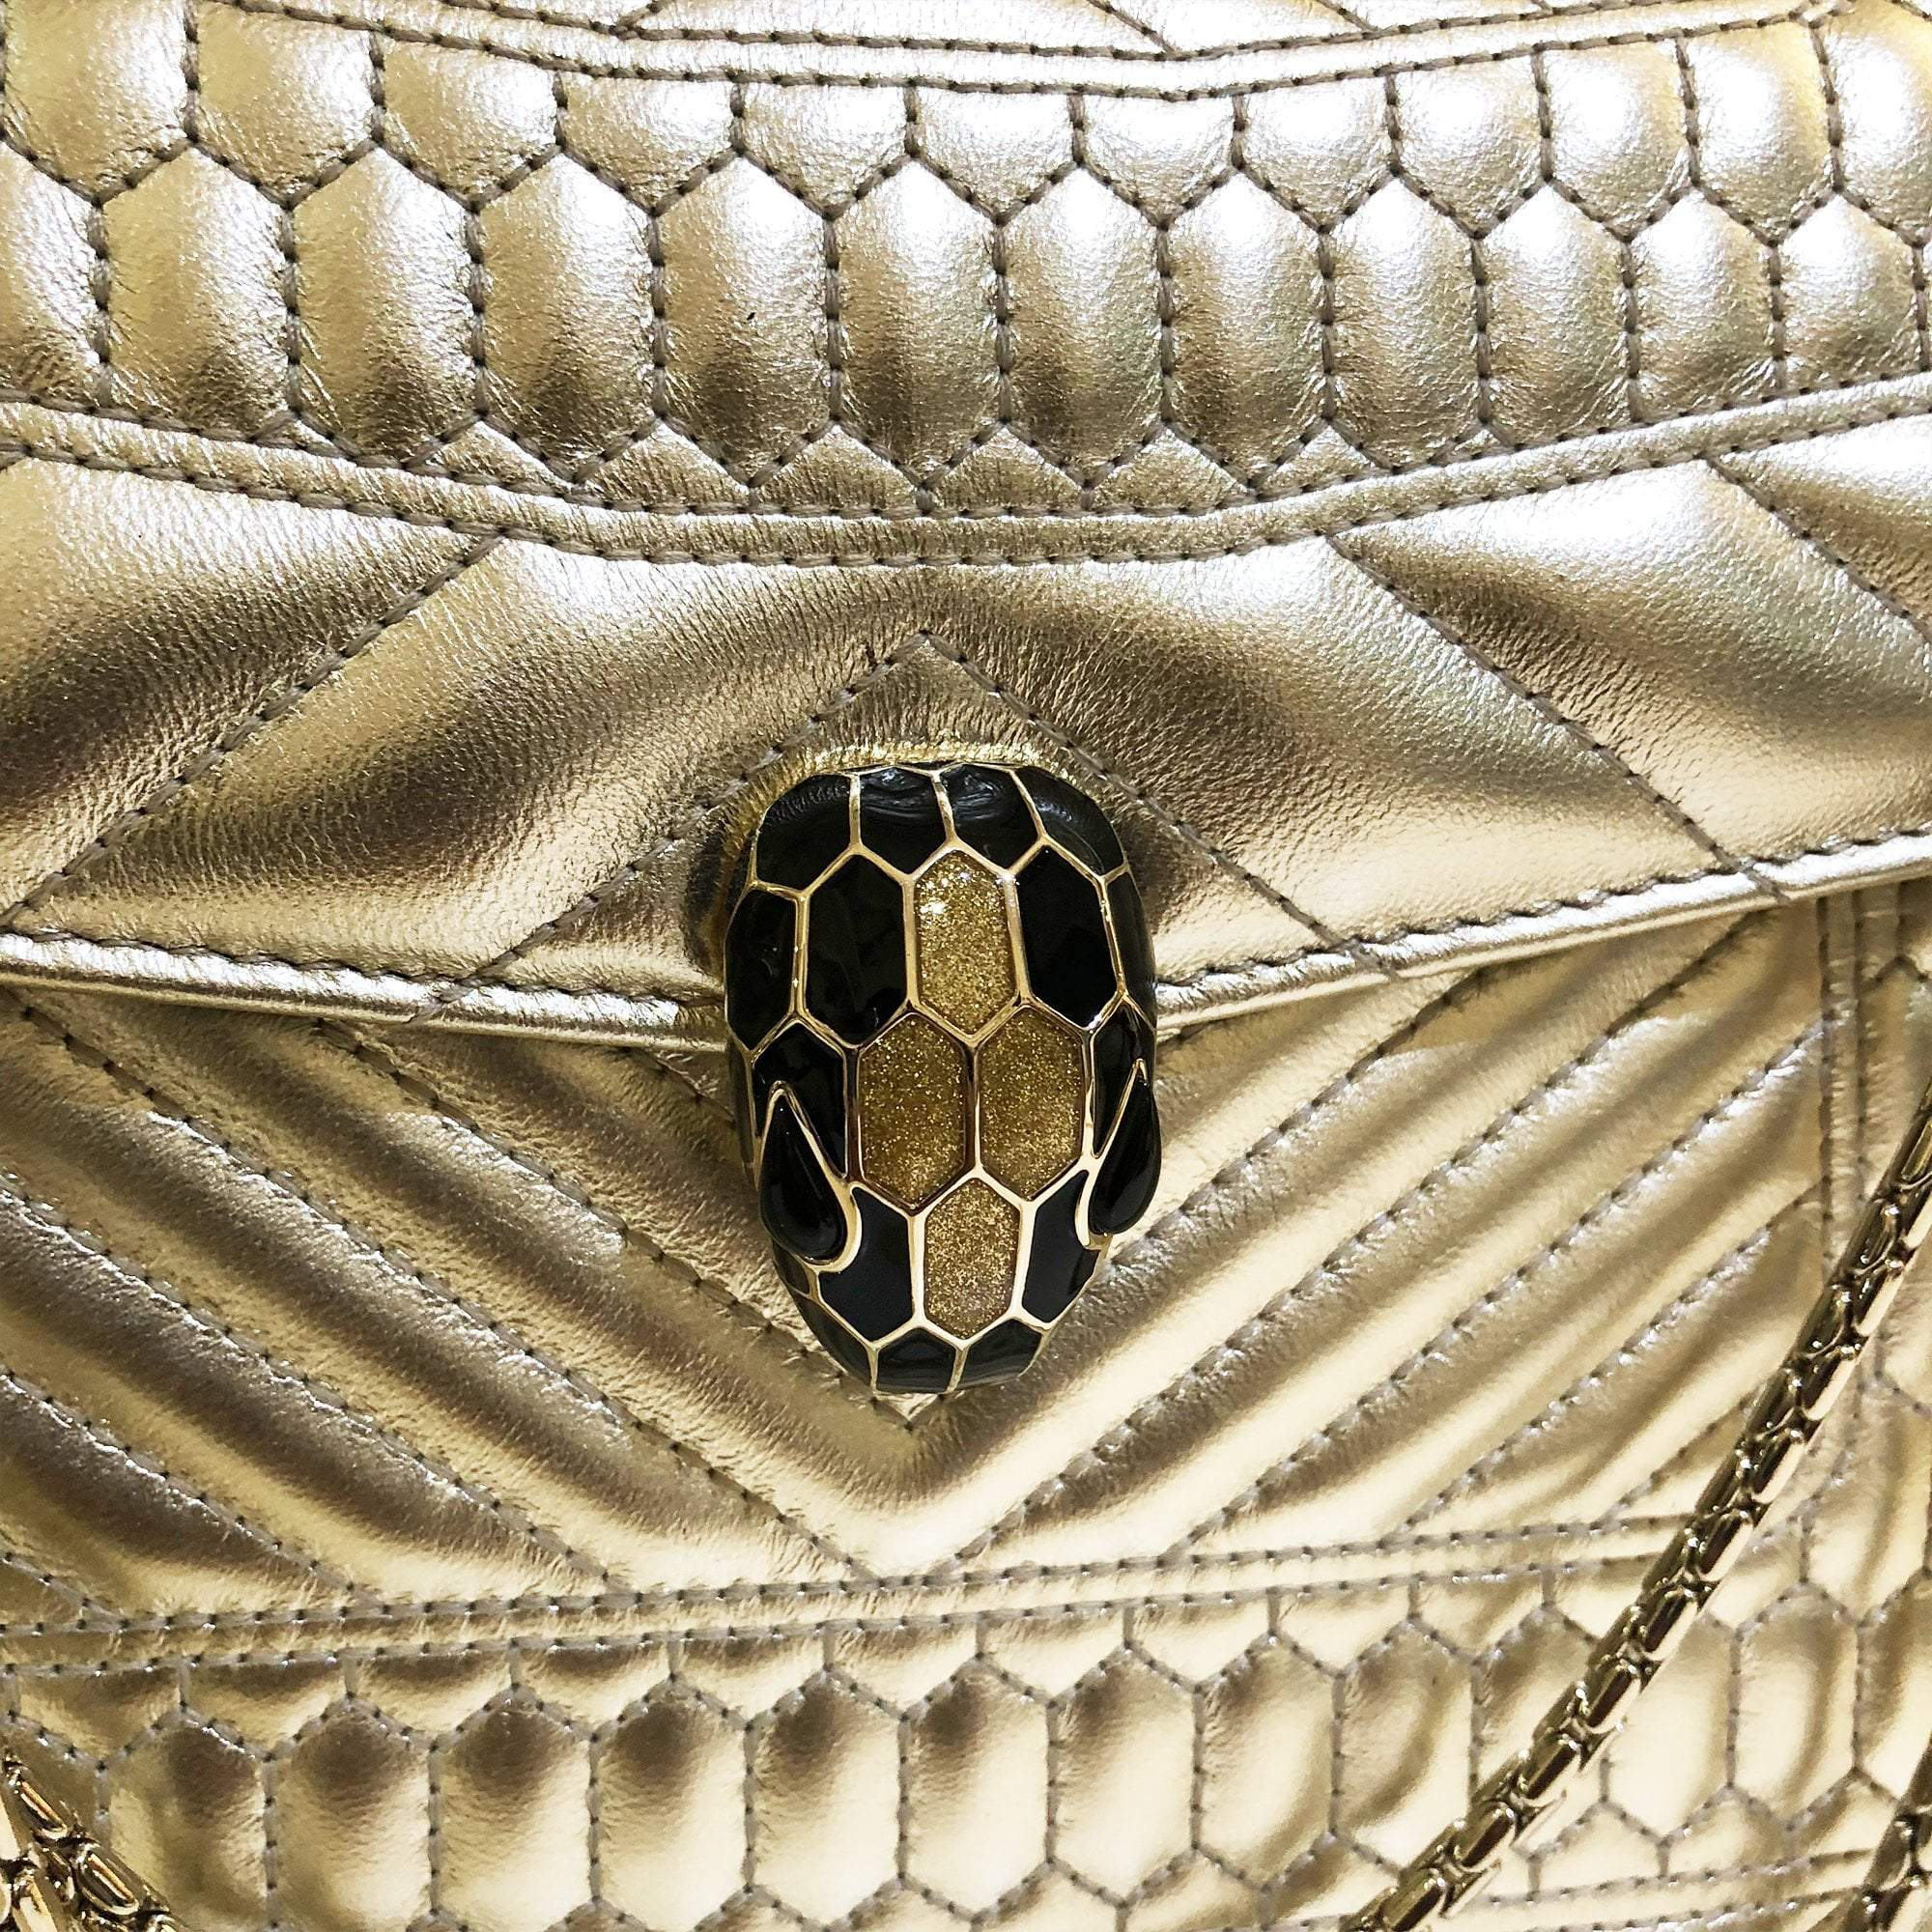 Bulgari's Serpenti Forever Quilted Medium Shoulder Bag